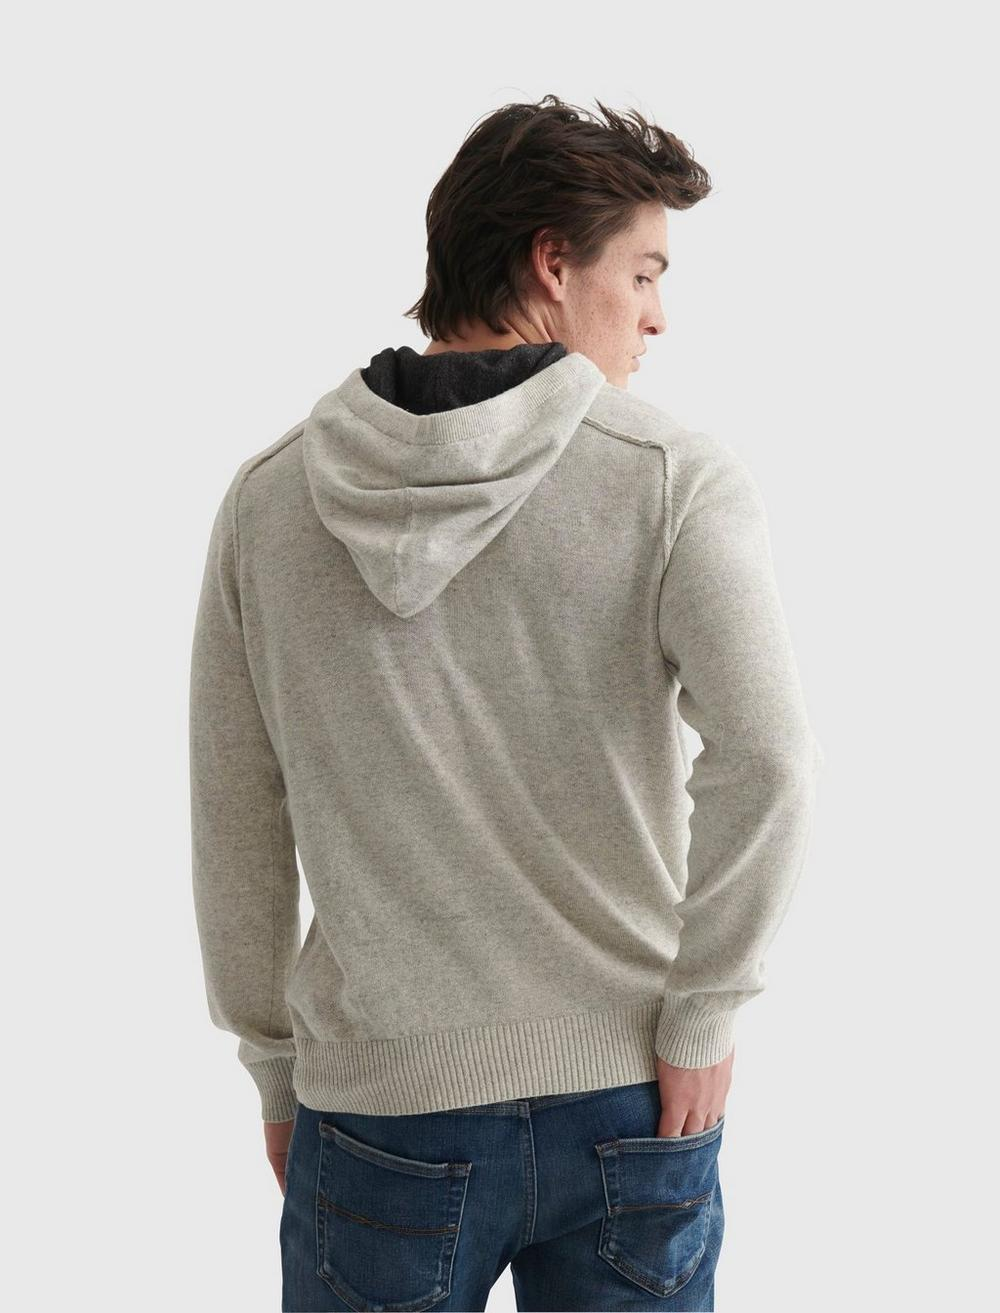 WELTER WEIGHT HOODIE, image 5